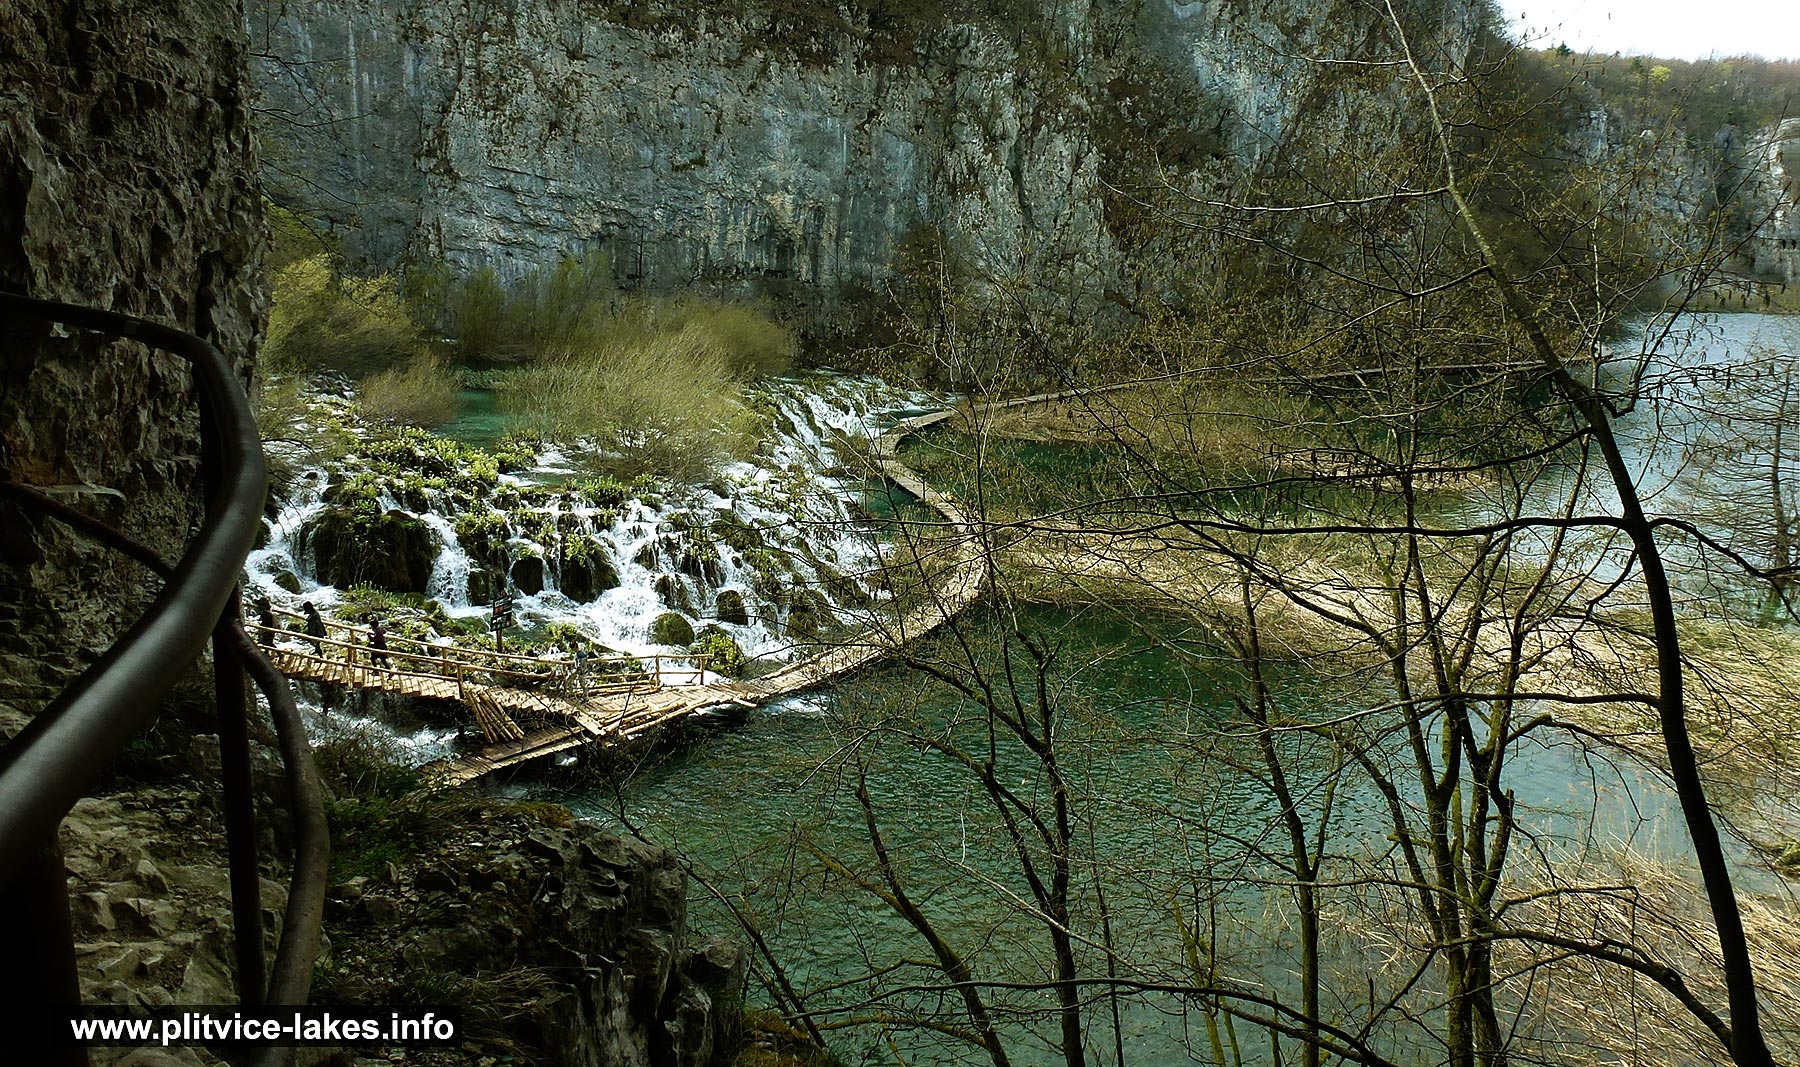 Spring Stroll along the lakes and waterfalls @ Plitvicka Jezera